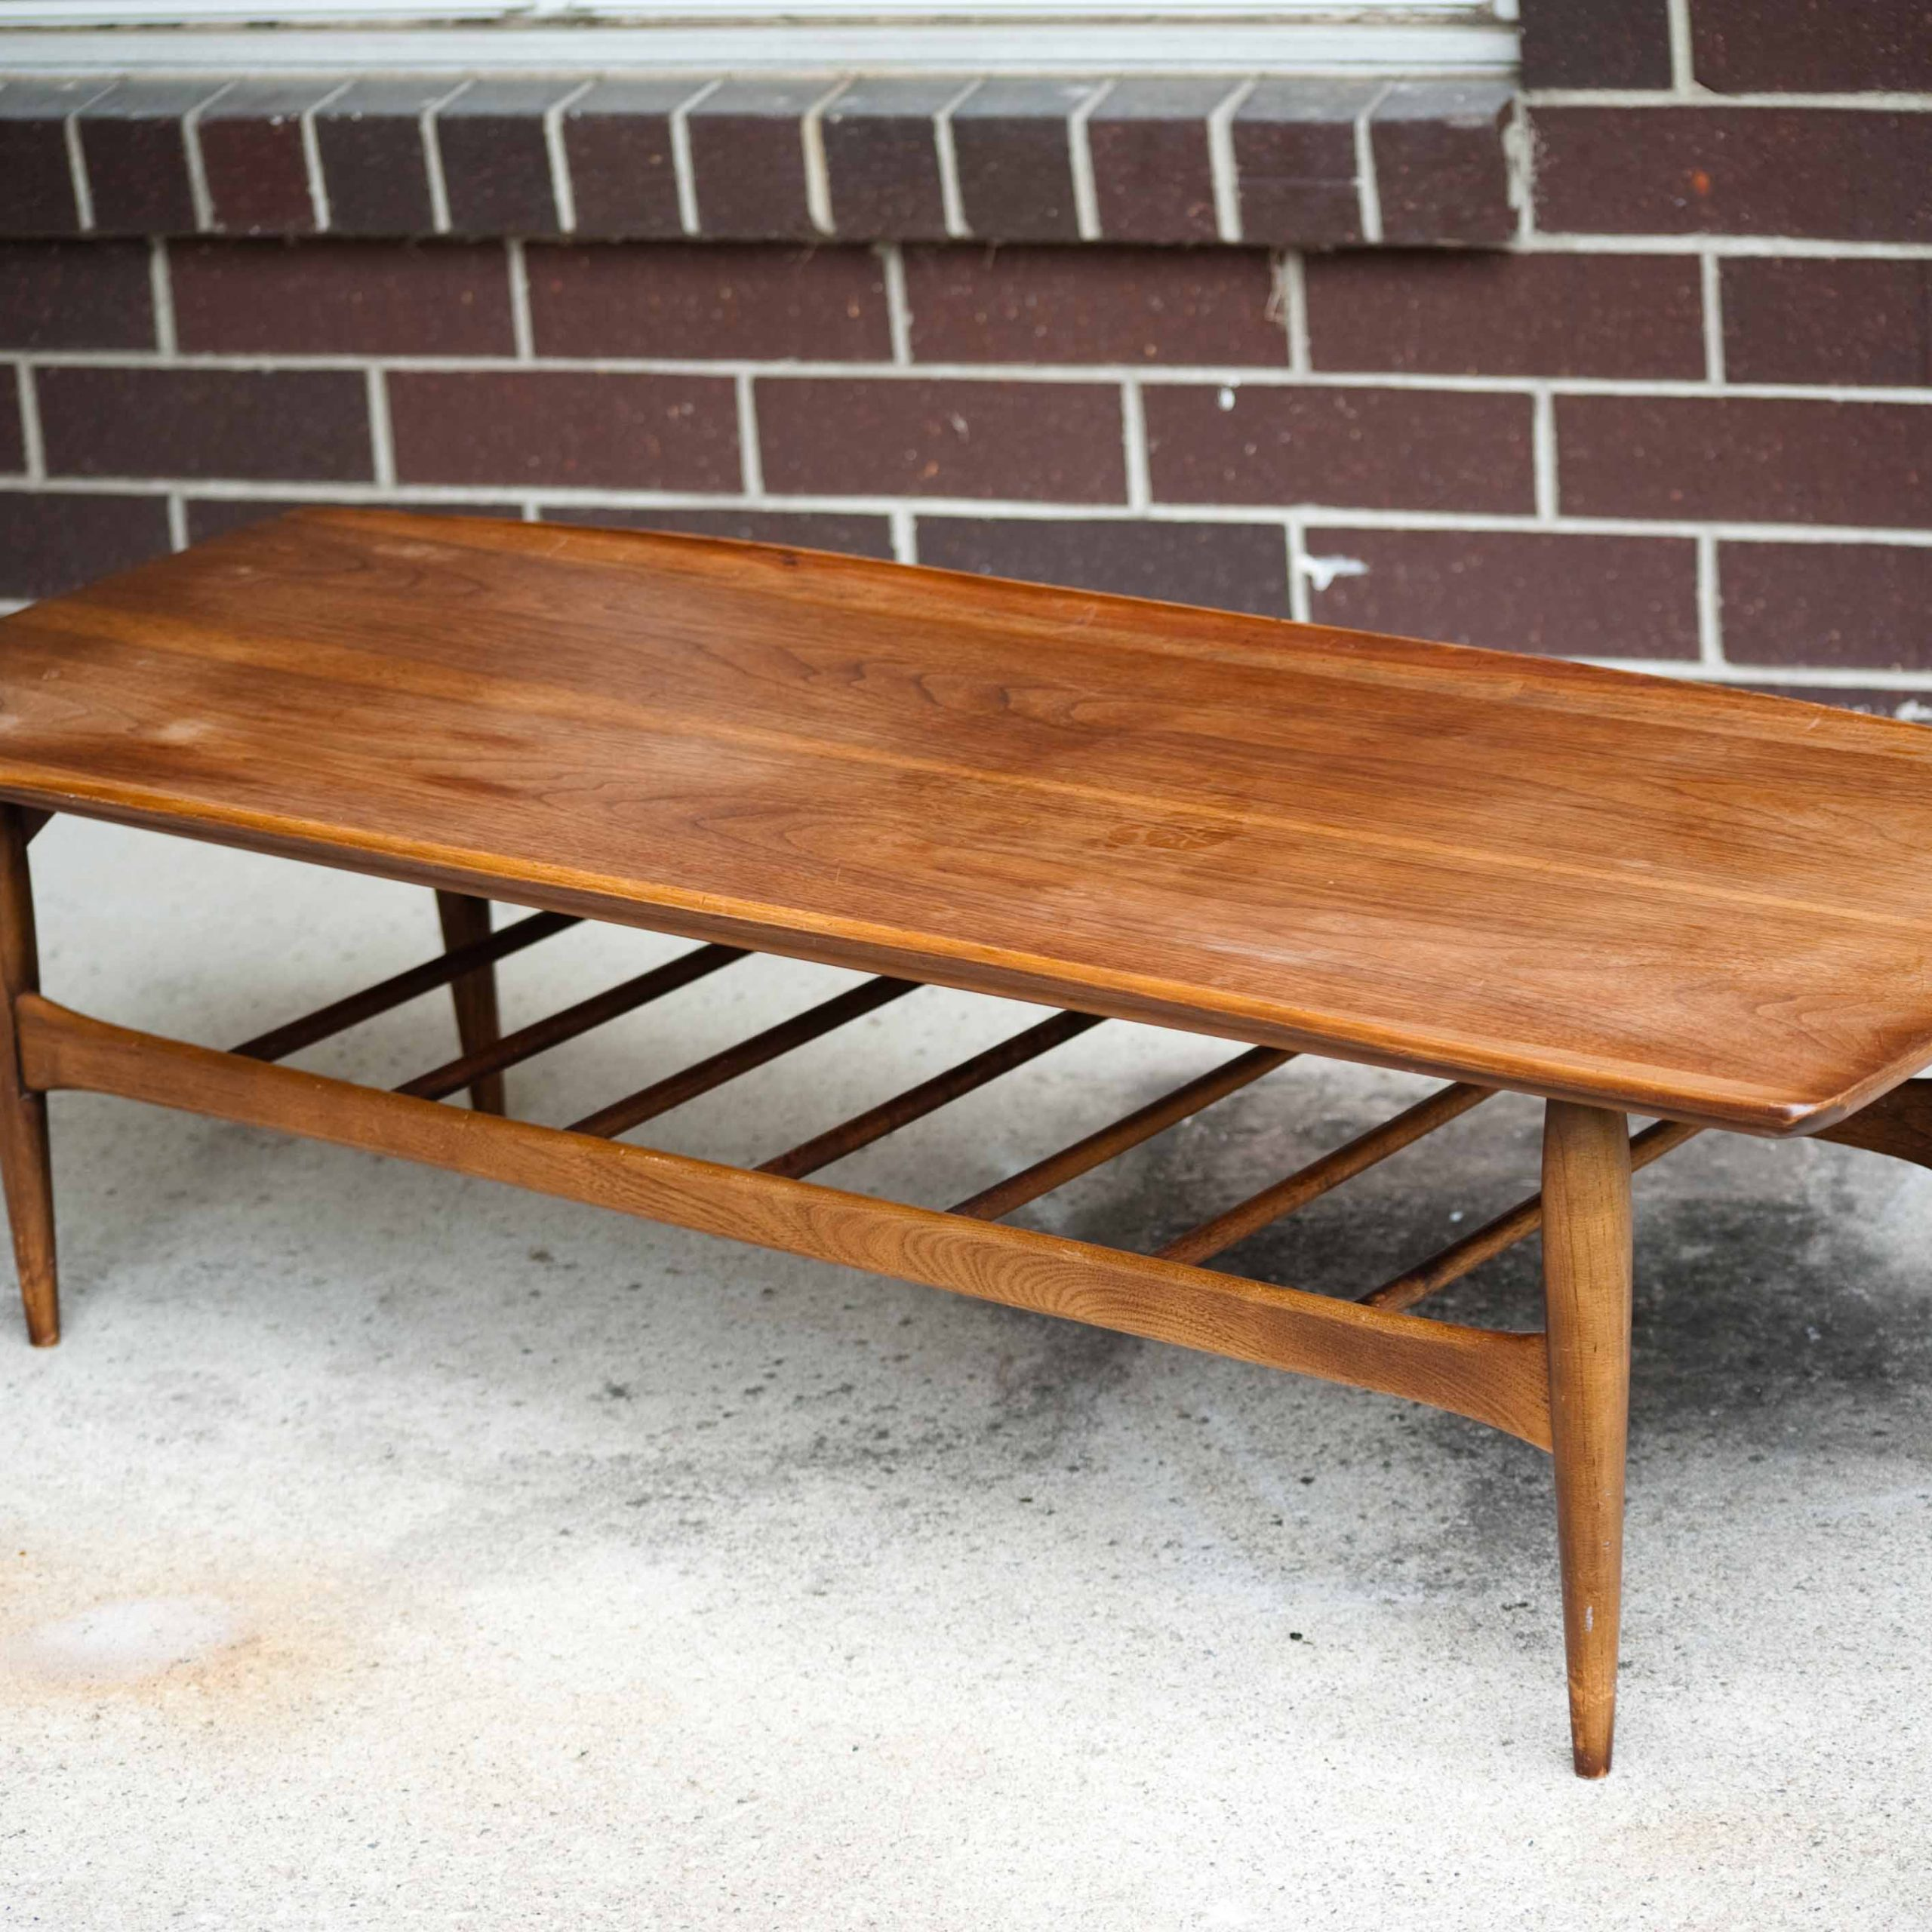 Danish Modern Coffee Table Shapes (View 8 of 30)